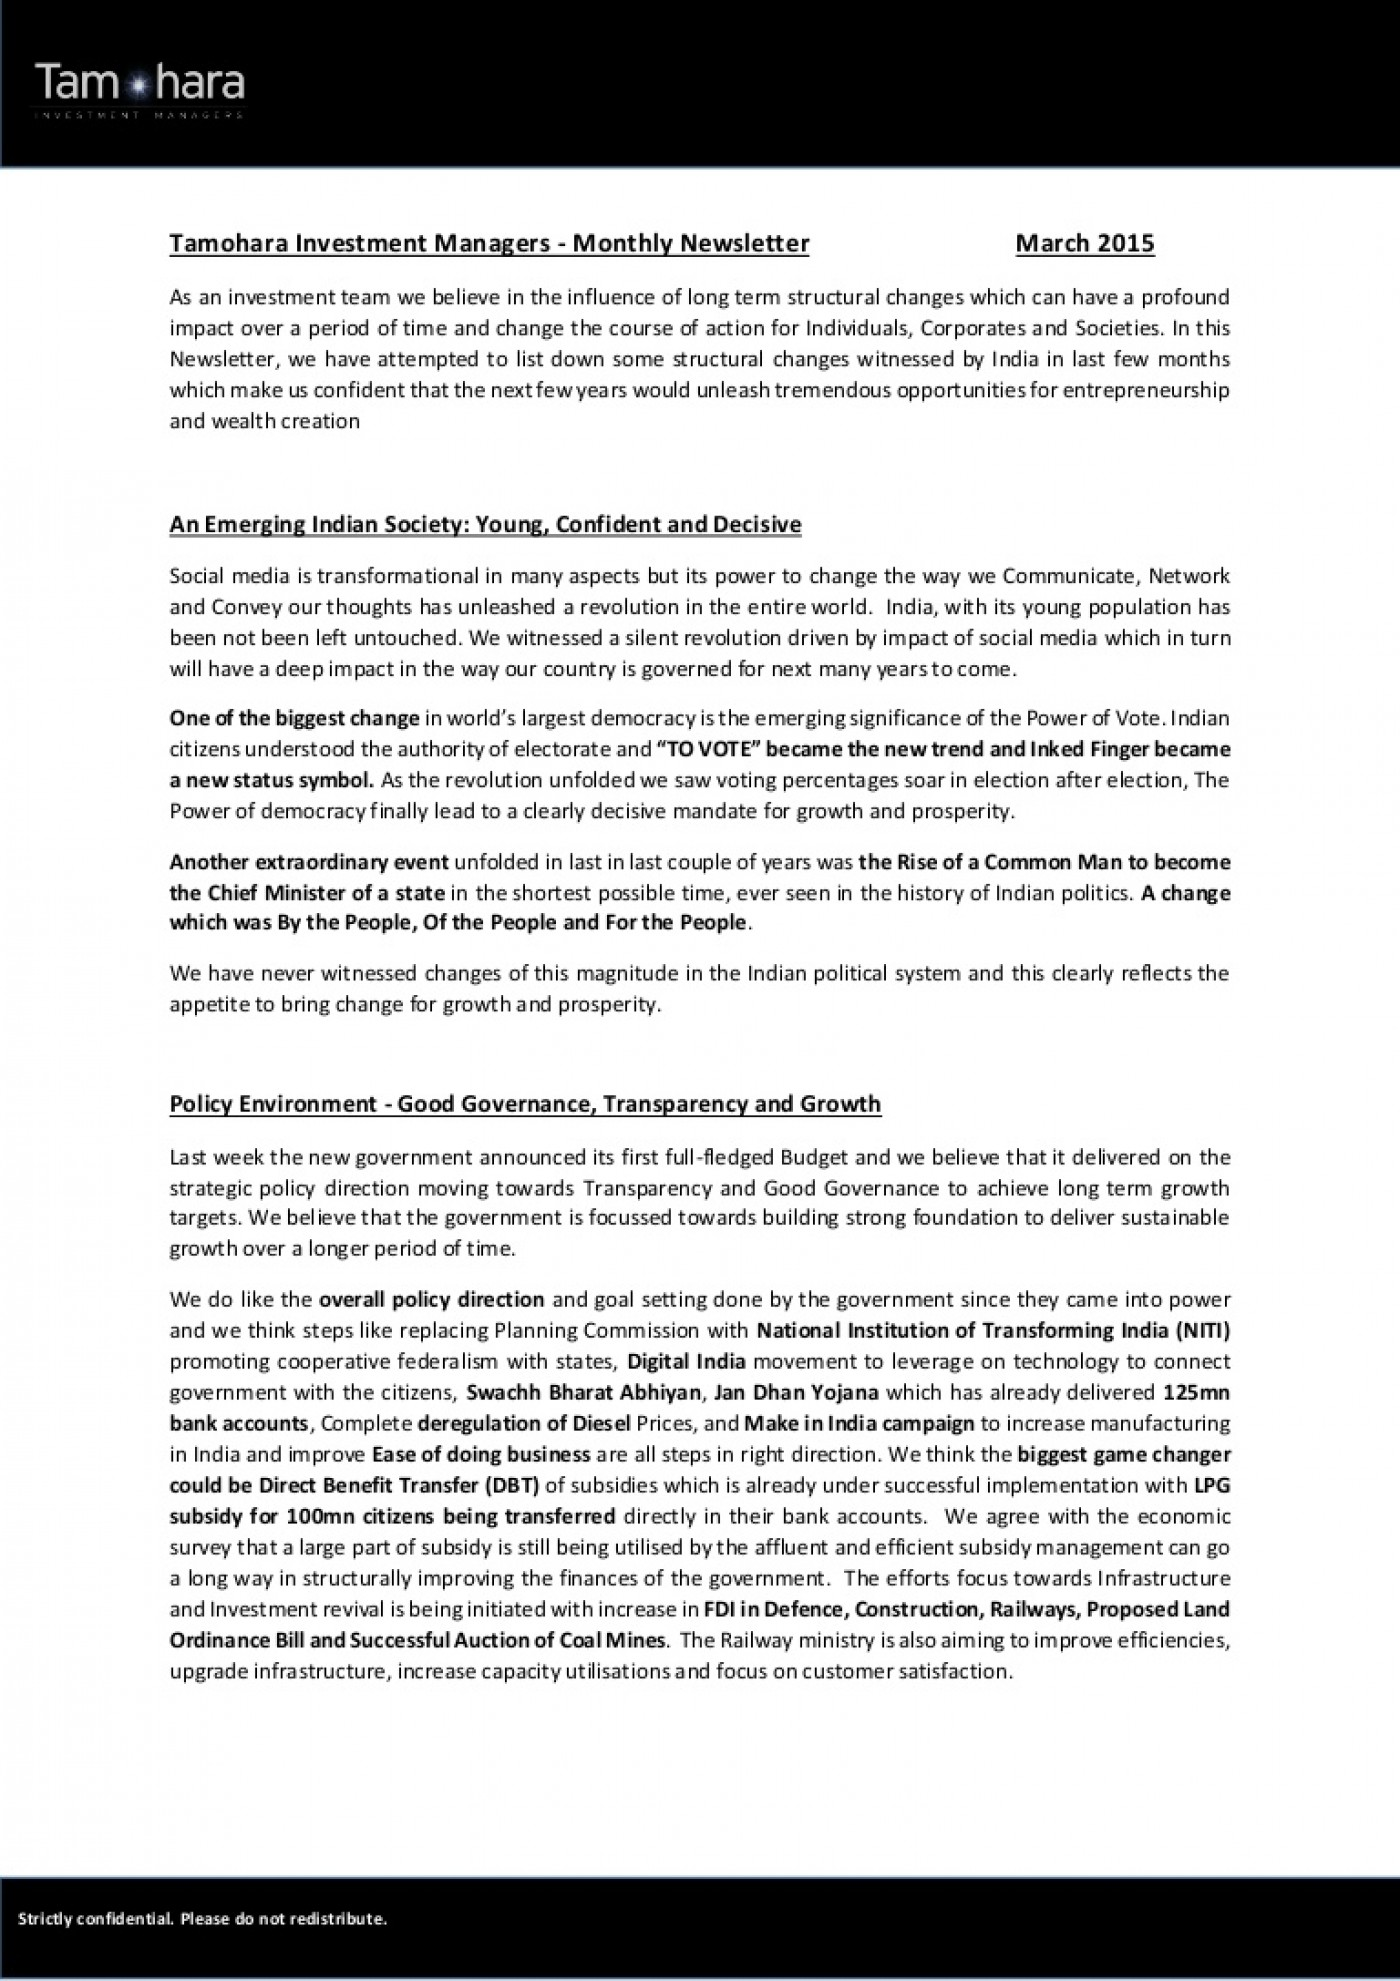 013 Essay Example Tamoharainvestmentnewsletter Mar2015 Conversion Gate01 Thumbnail How To Make Outstanding A Longer Paper With Periods Words Seem 1400